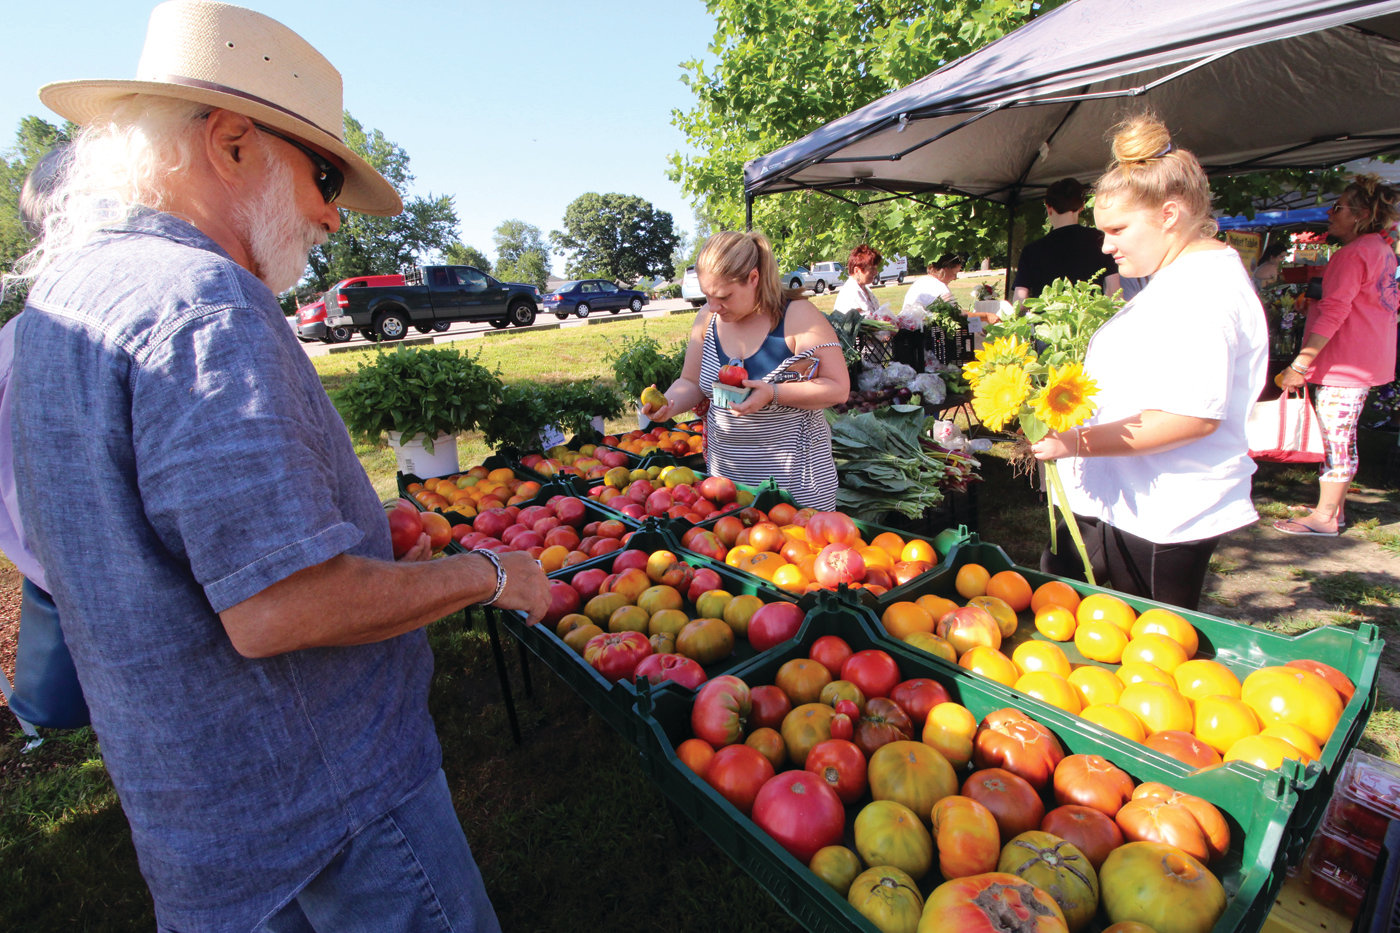 GRAPEFRUITS? The size and color of some of the tomatoes at the stand operated by Christina Dedora of Blue Skys Farm could have some shoppers wondering if they were oranges and grapefruits. There will be a tomato tasting and raffle at the market this Saturday.